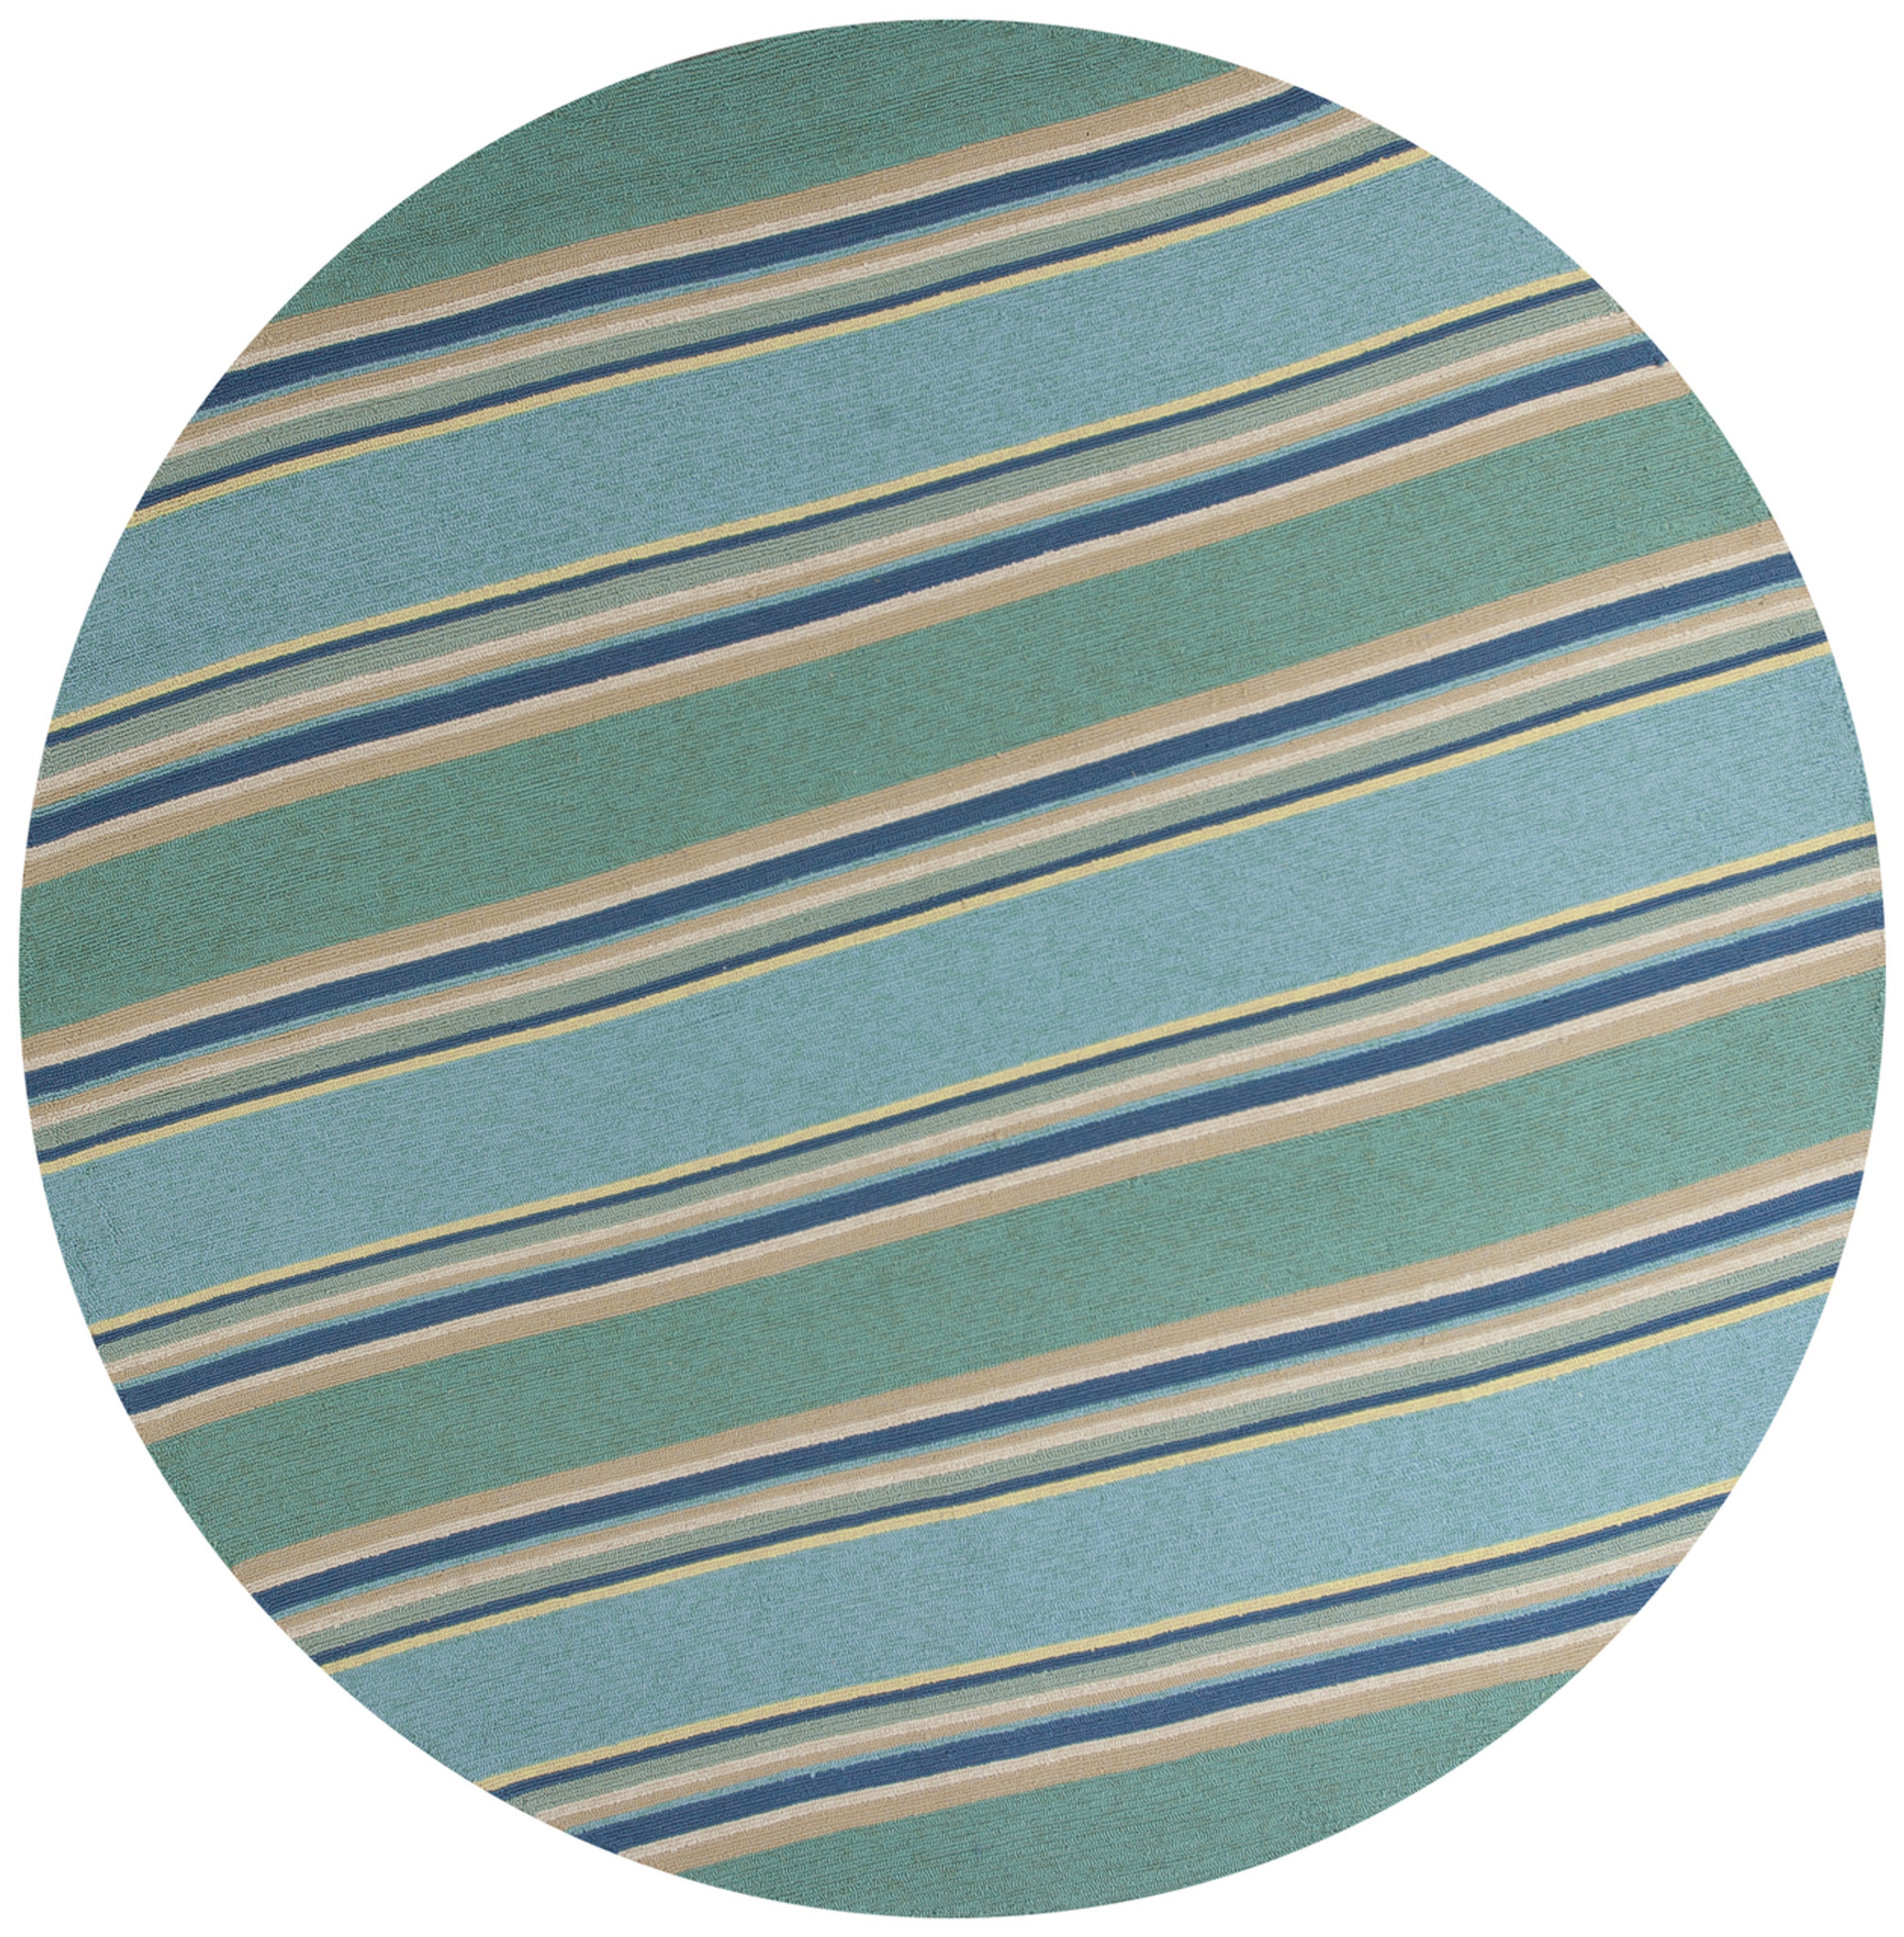 Homefires Indoor Outdoor Hooked Turquoise White Indoor: Harbor Turquoise Stripes Area Rug